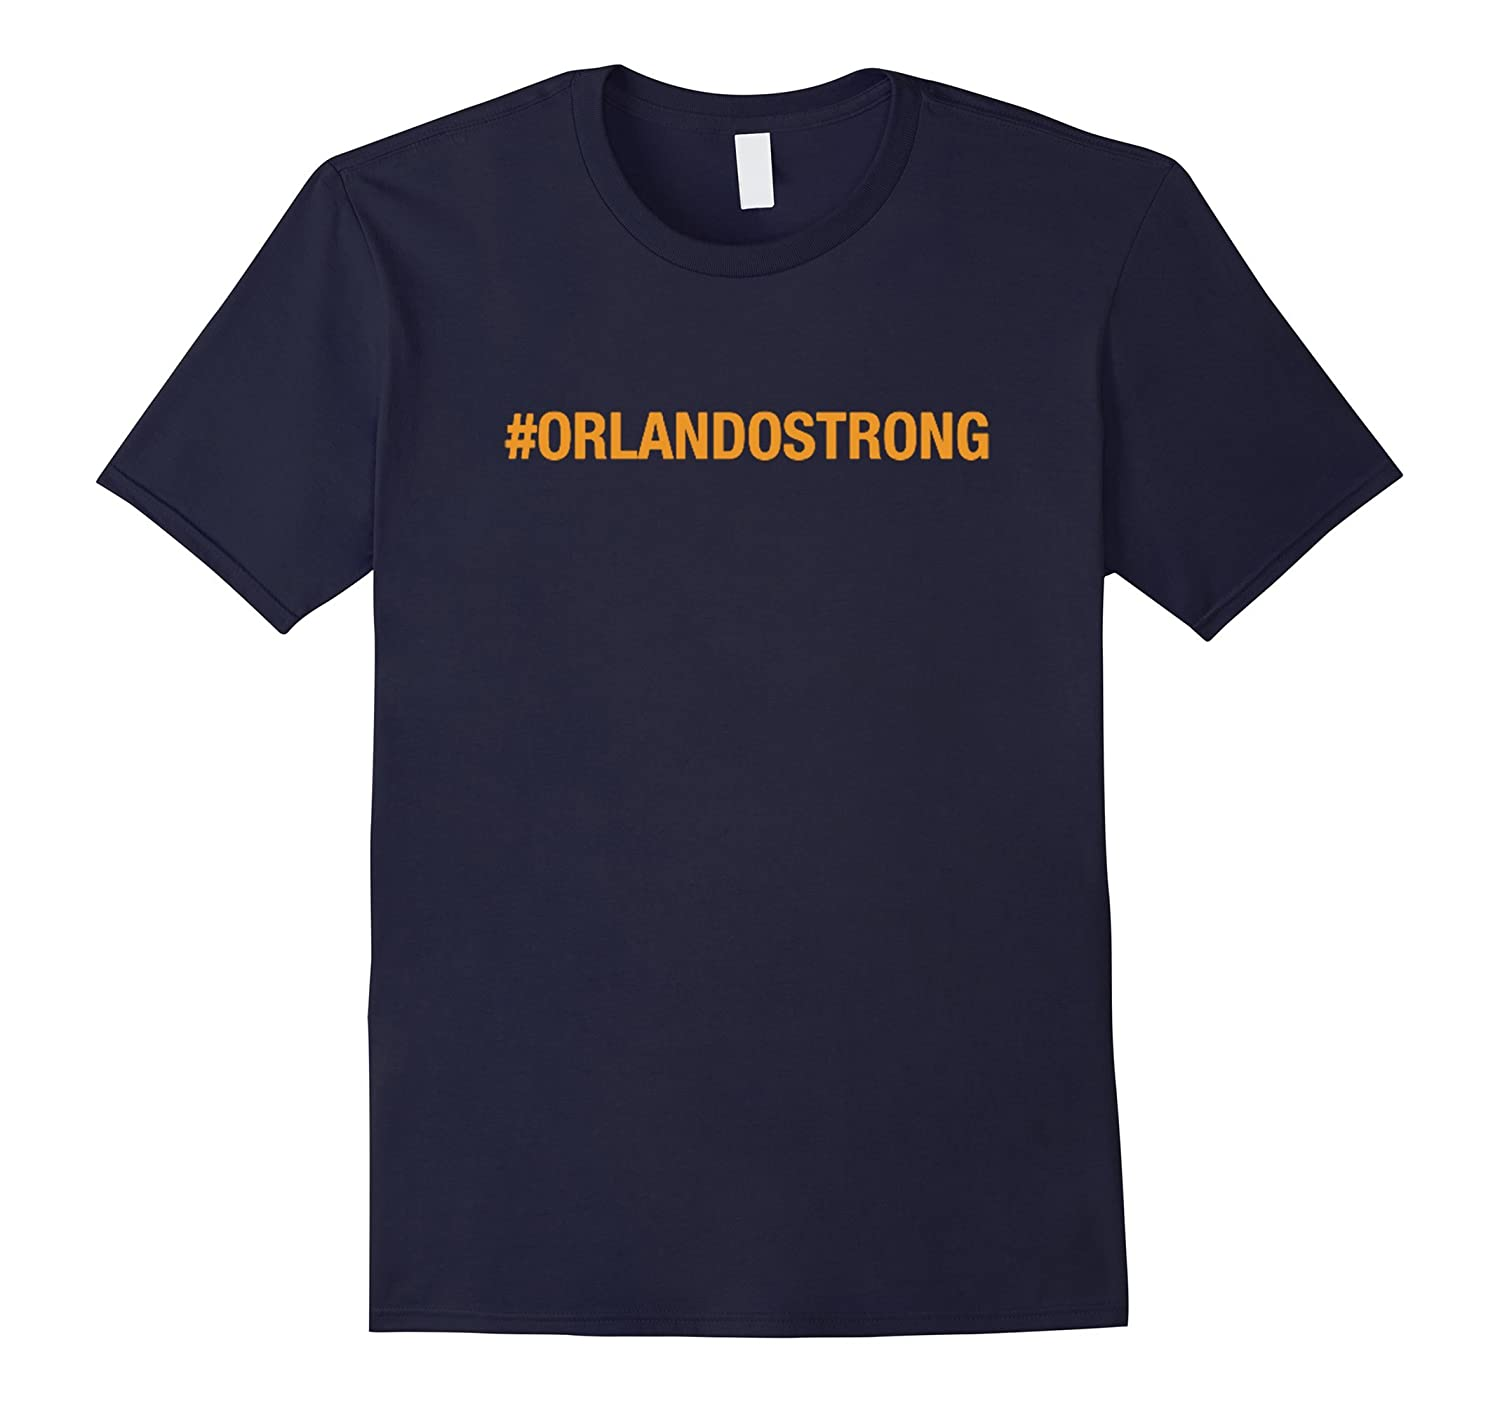 Be strong Orlando T-shirt - Not for profit but the love-BN